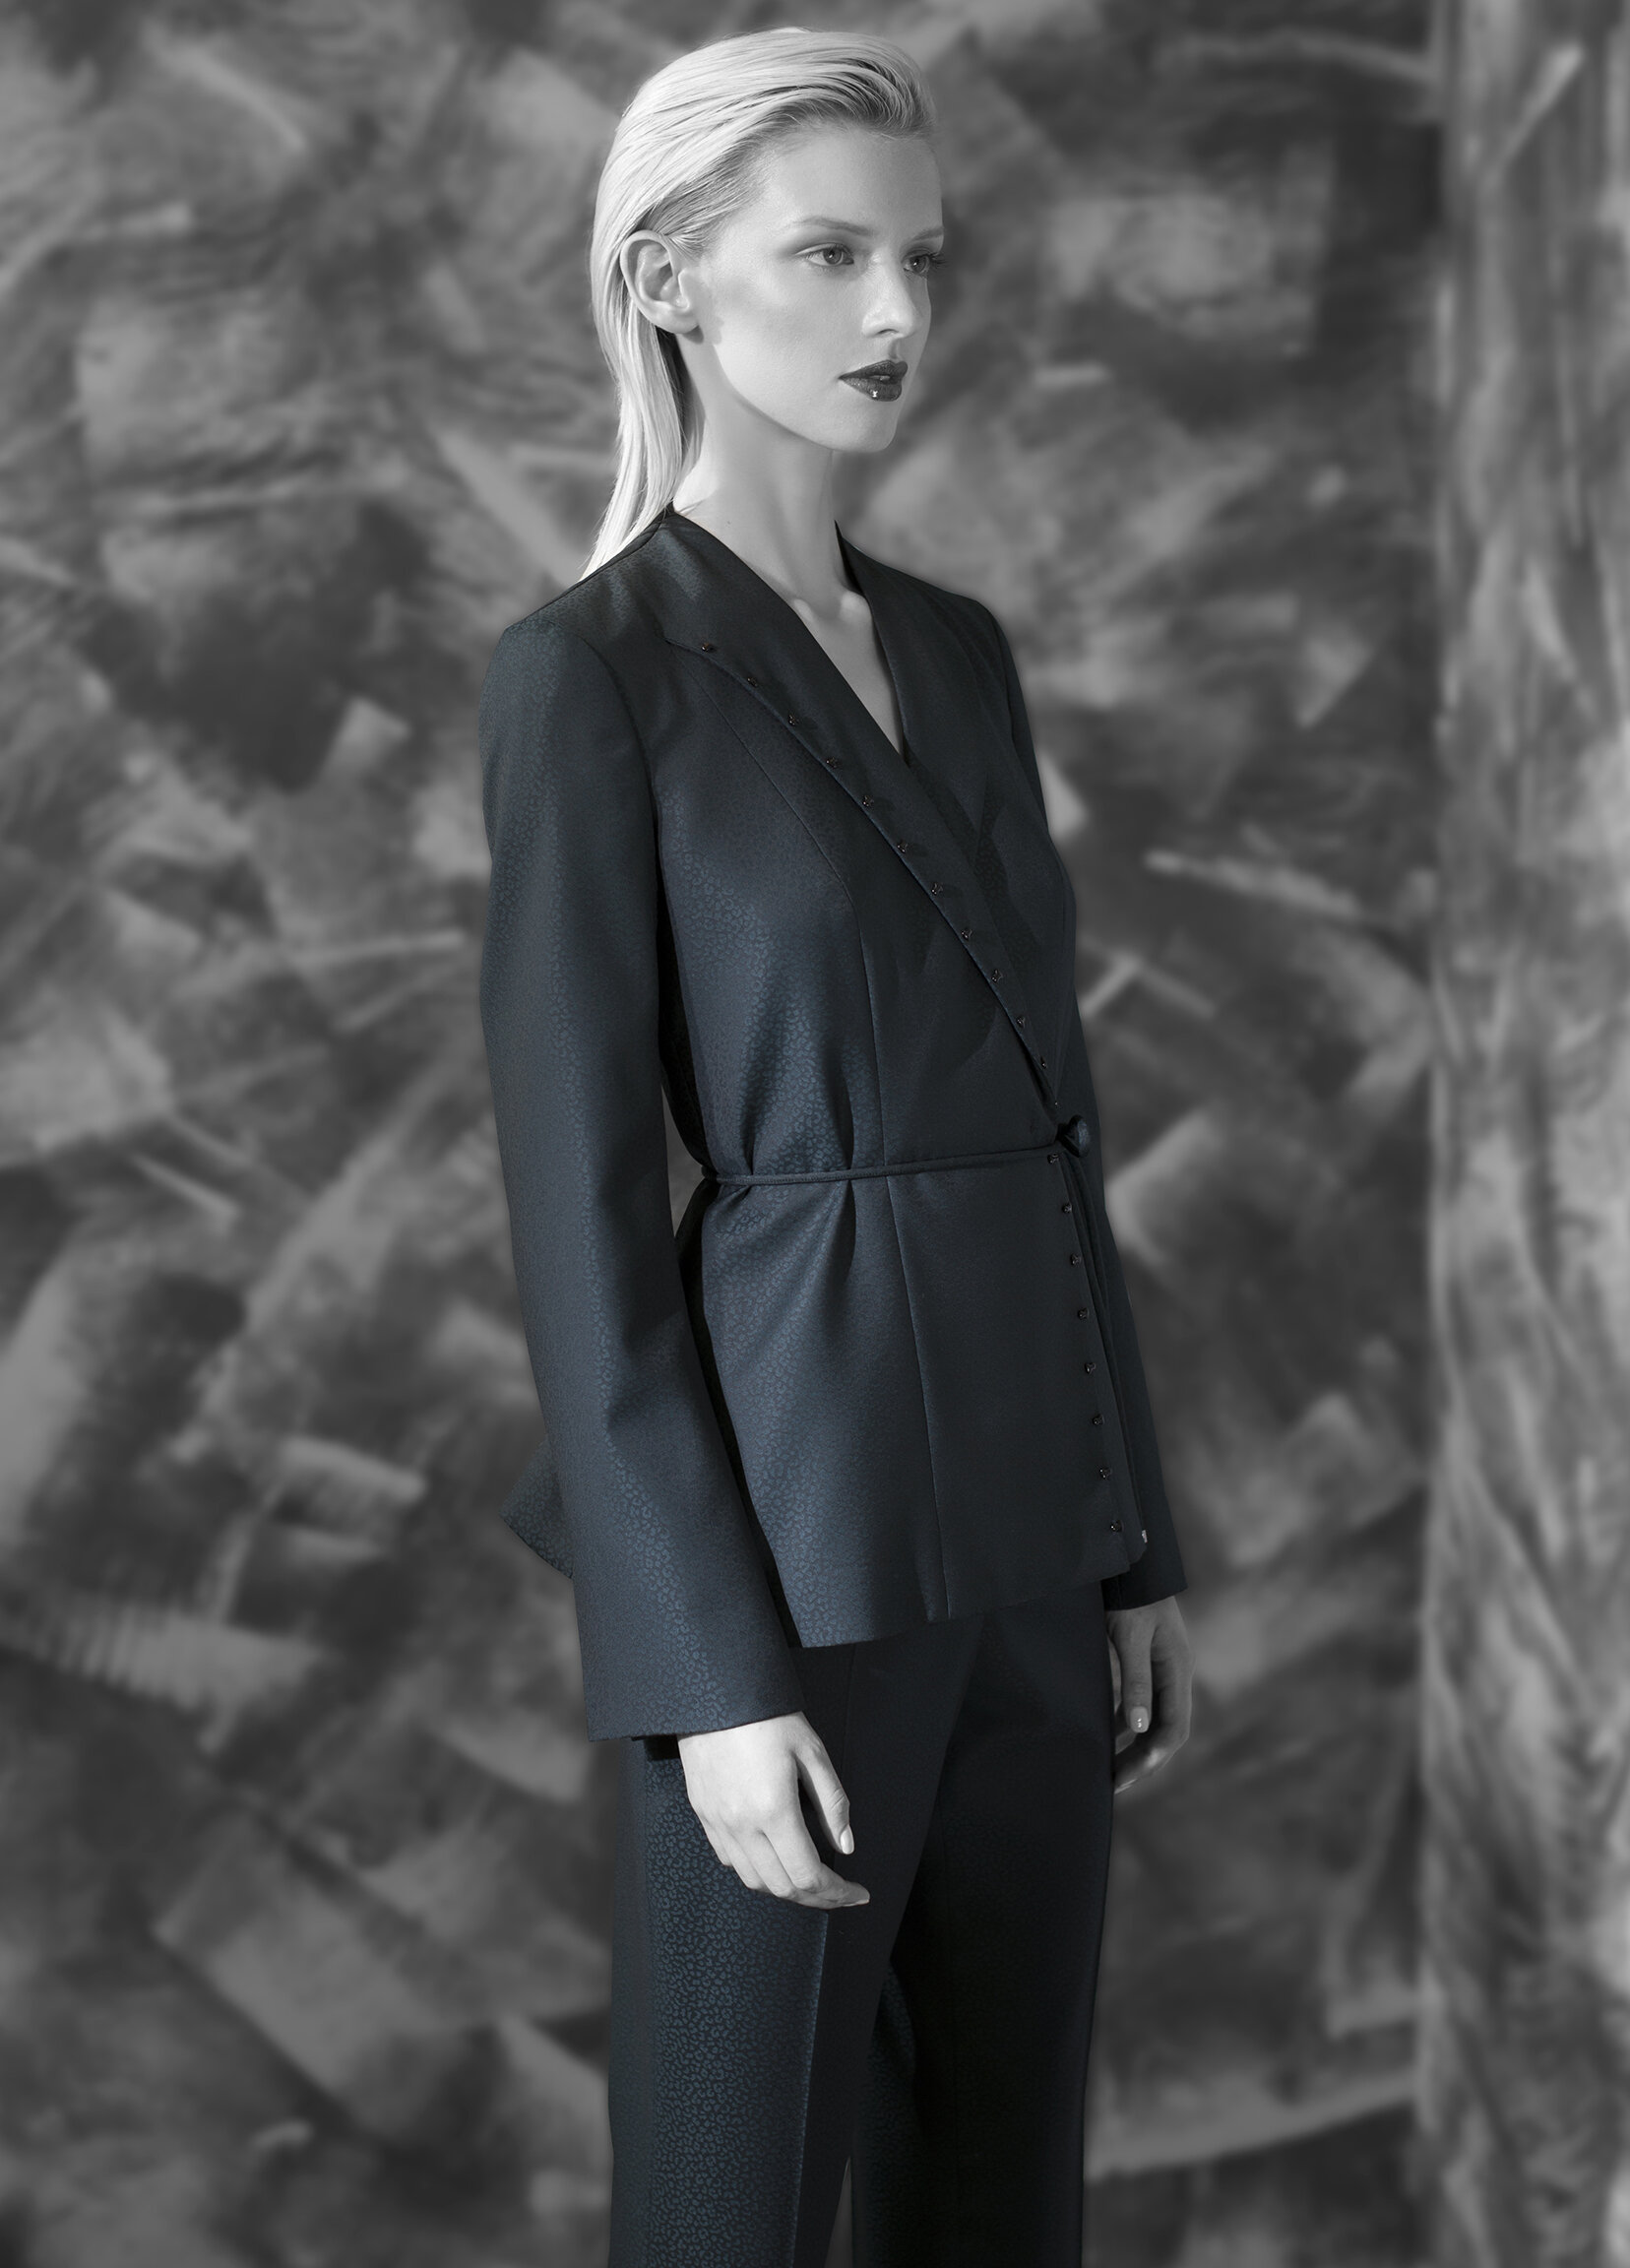 Abstract jacquard superfine wool tapered leg trouser and back fluid beaded jacket with belt tie  teal onyx azurite